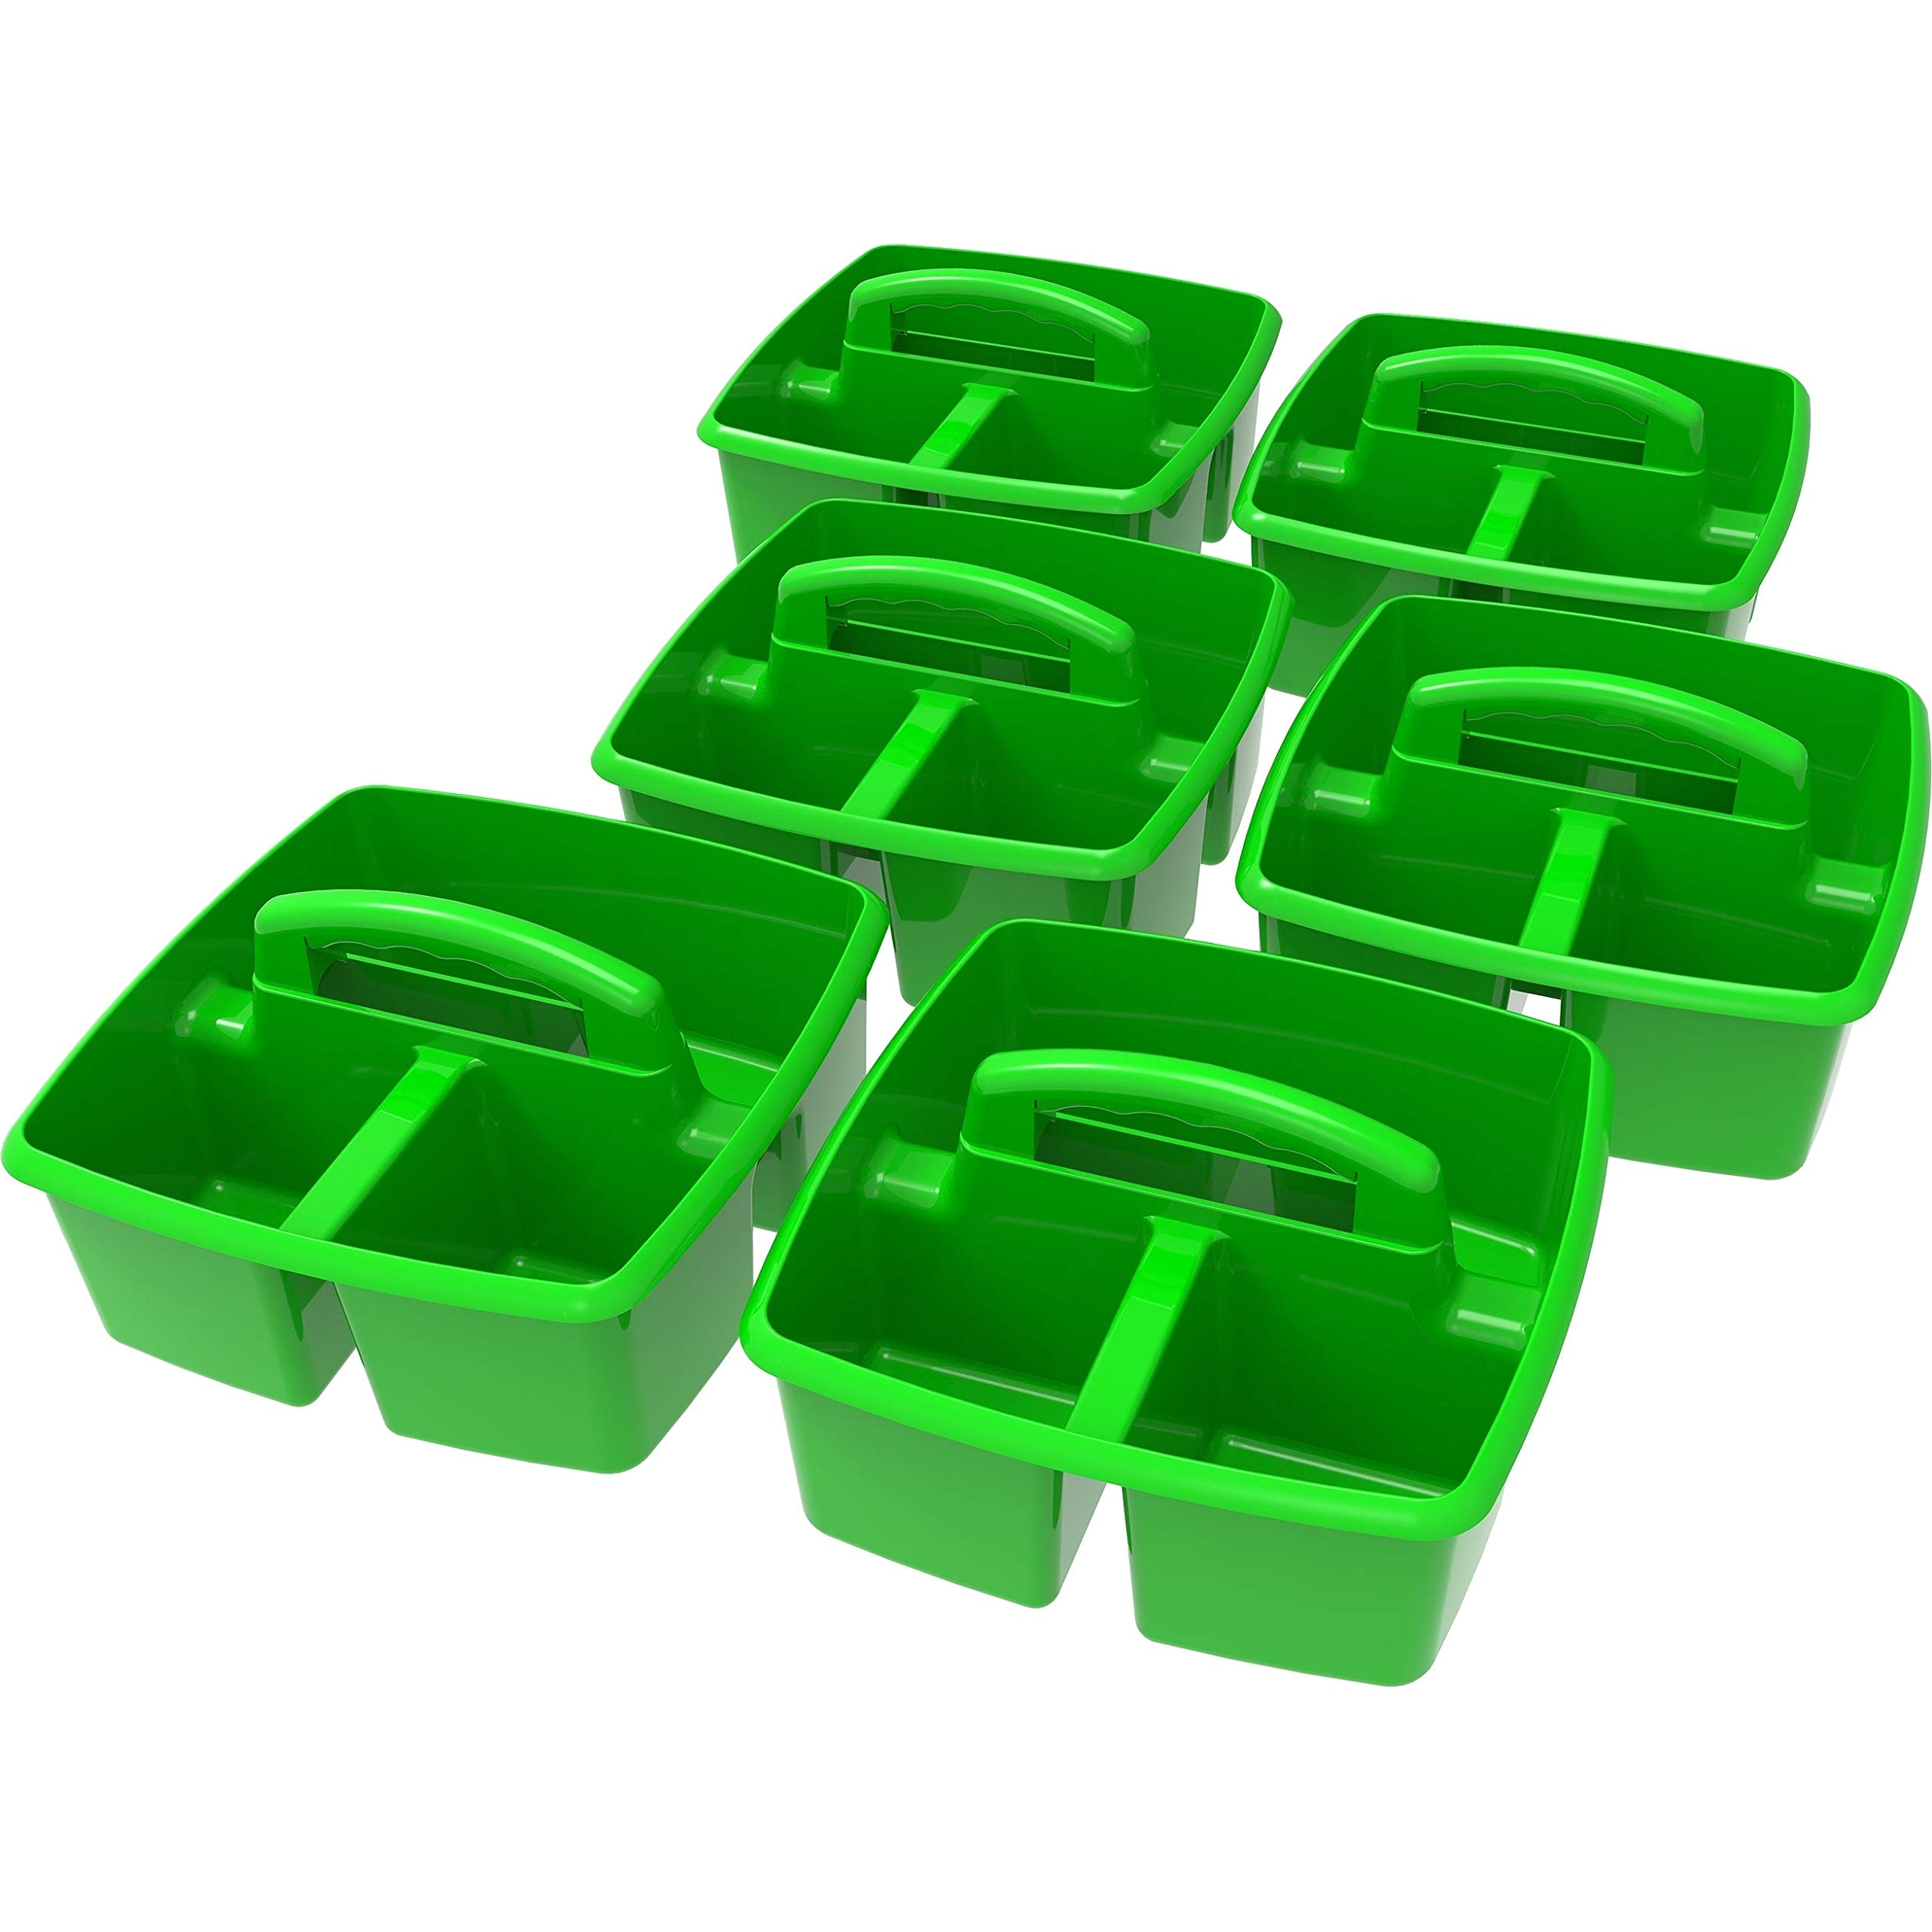 Storex Green Plastic Small Caddy (6 Units/Pack)